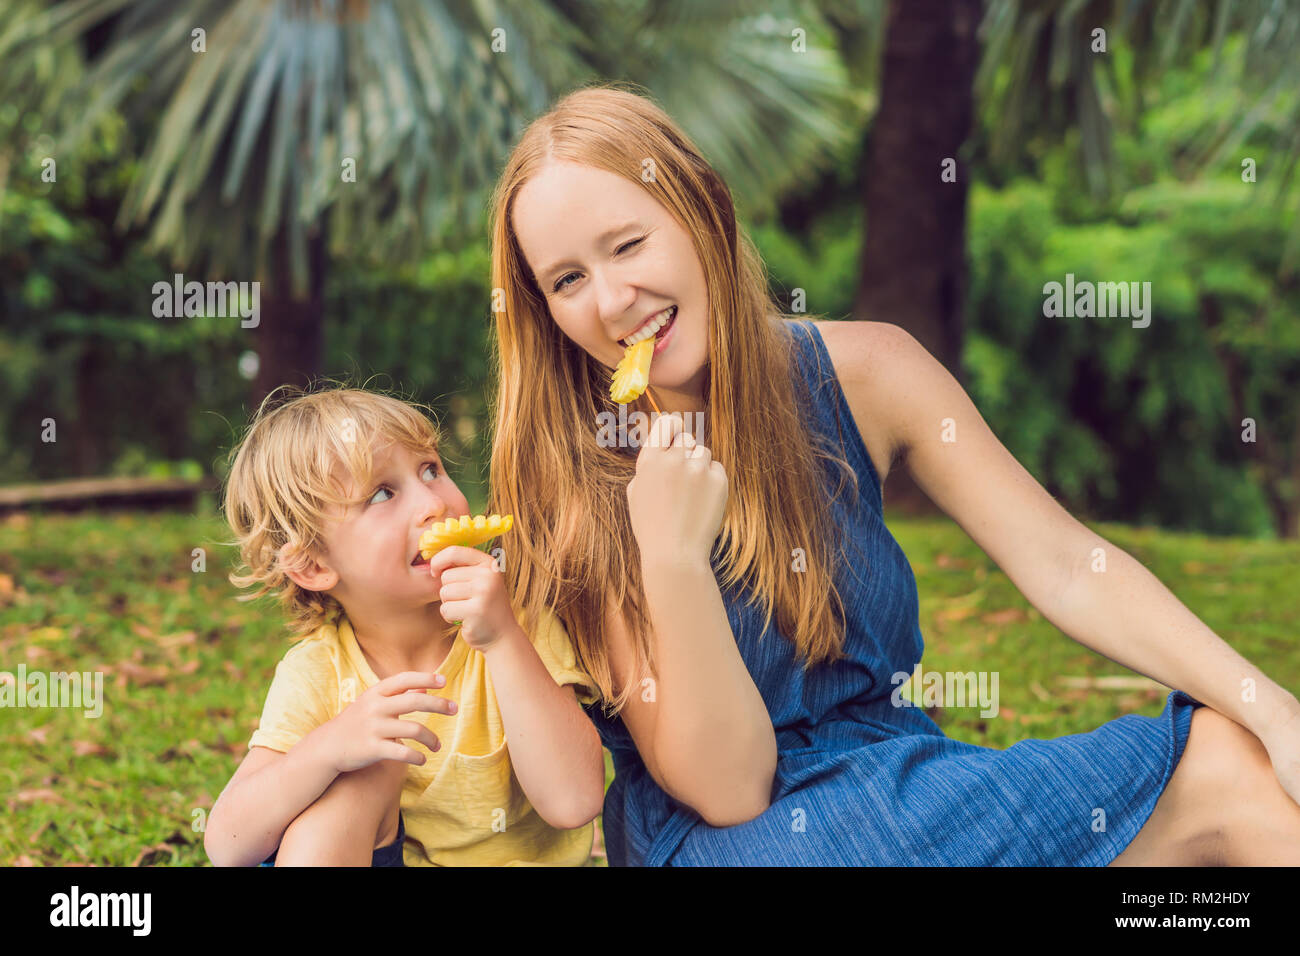 Mom and son riding melons